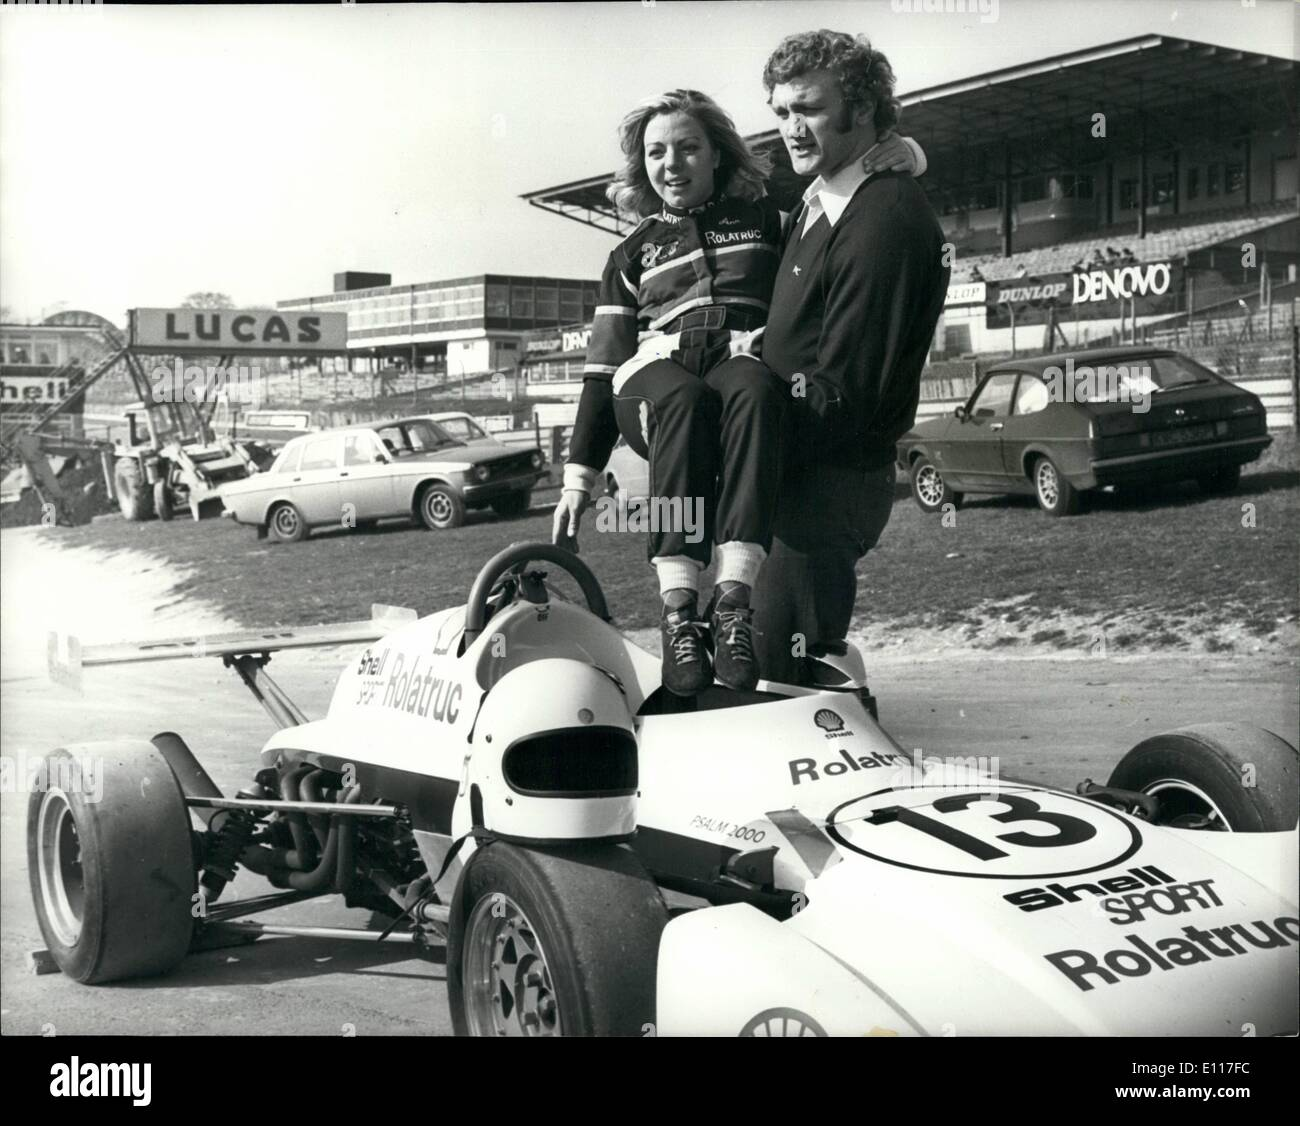 Mar. 03, 1976 - Anne Moore and Joe Bugner practice at Brands Hatch: Joe Bugner was among many Olympic and International sports stars who were today at Brands Hatch practising for next weeks race in aid of the sportsmans charity Starks. Champion Show Jumper Anne Moore who was turned her hand to professional motor racing and will be driving a single seater Elden Ford 2000 in about 30 races this season, was there to give a few words of advice to Joe. Photo shows Anne Moore is helped into her car by Joe Bugner. - Stock Image